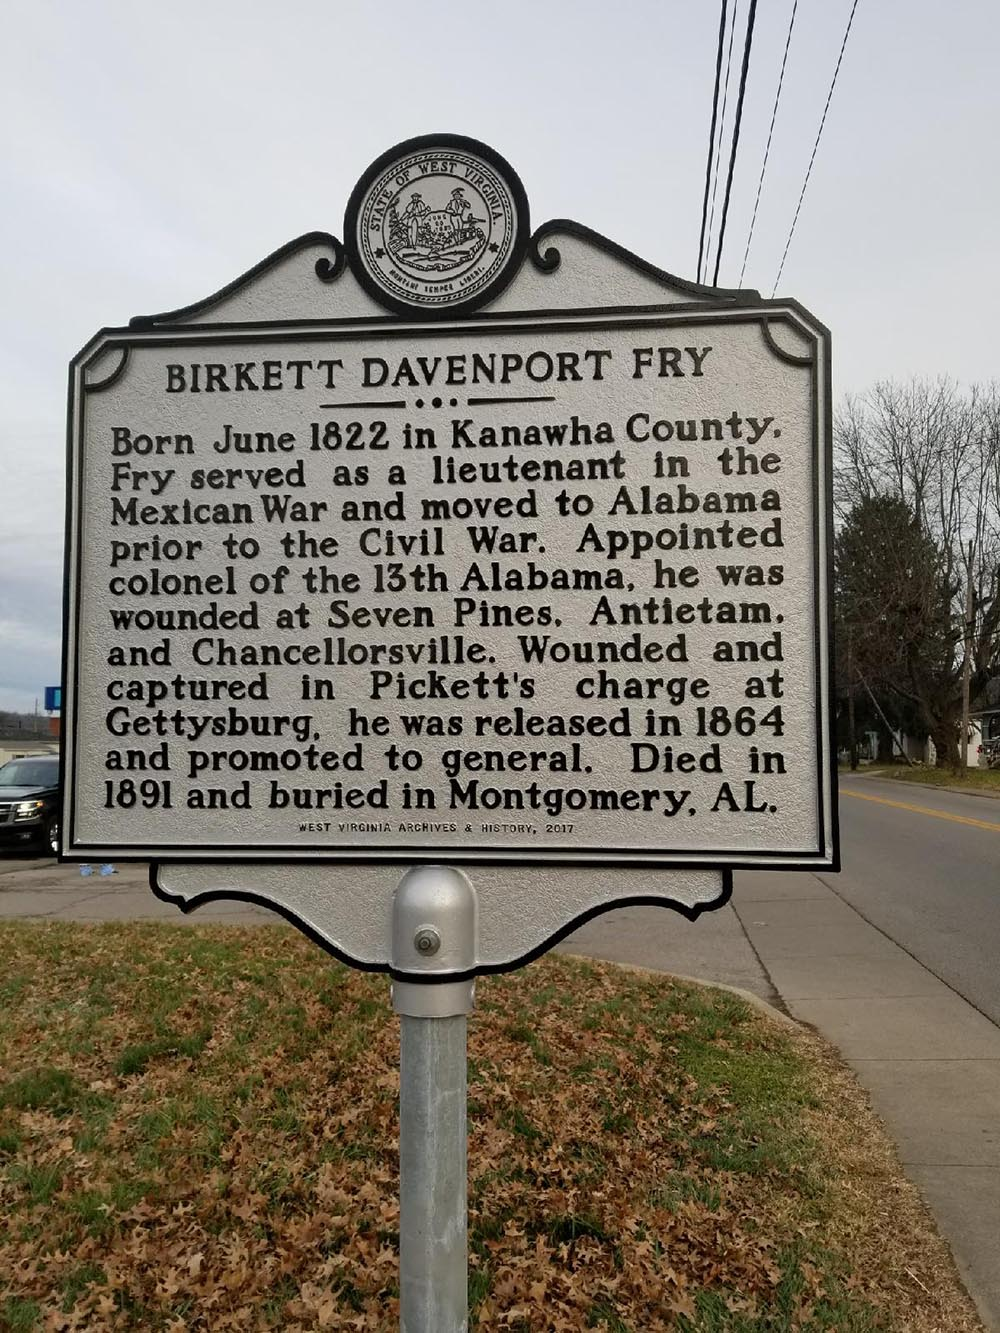 Birkett Davenport Fry Highway Historical Marker